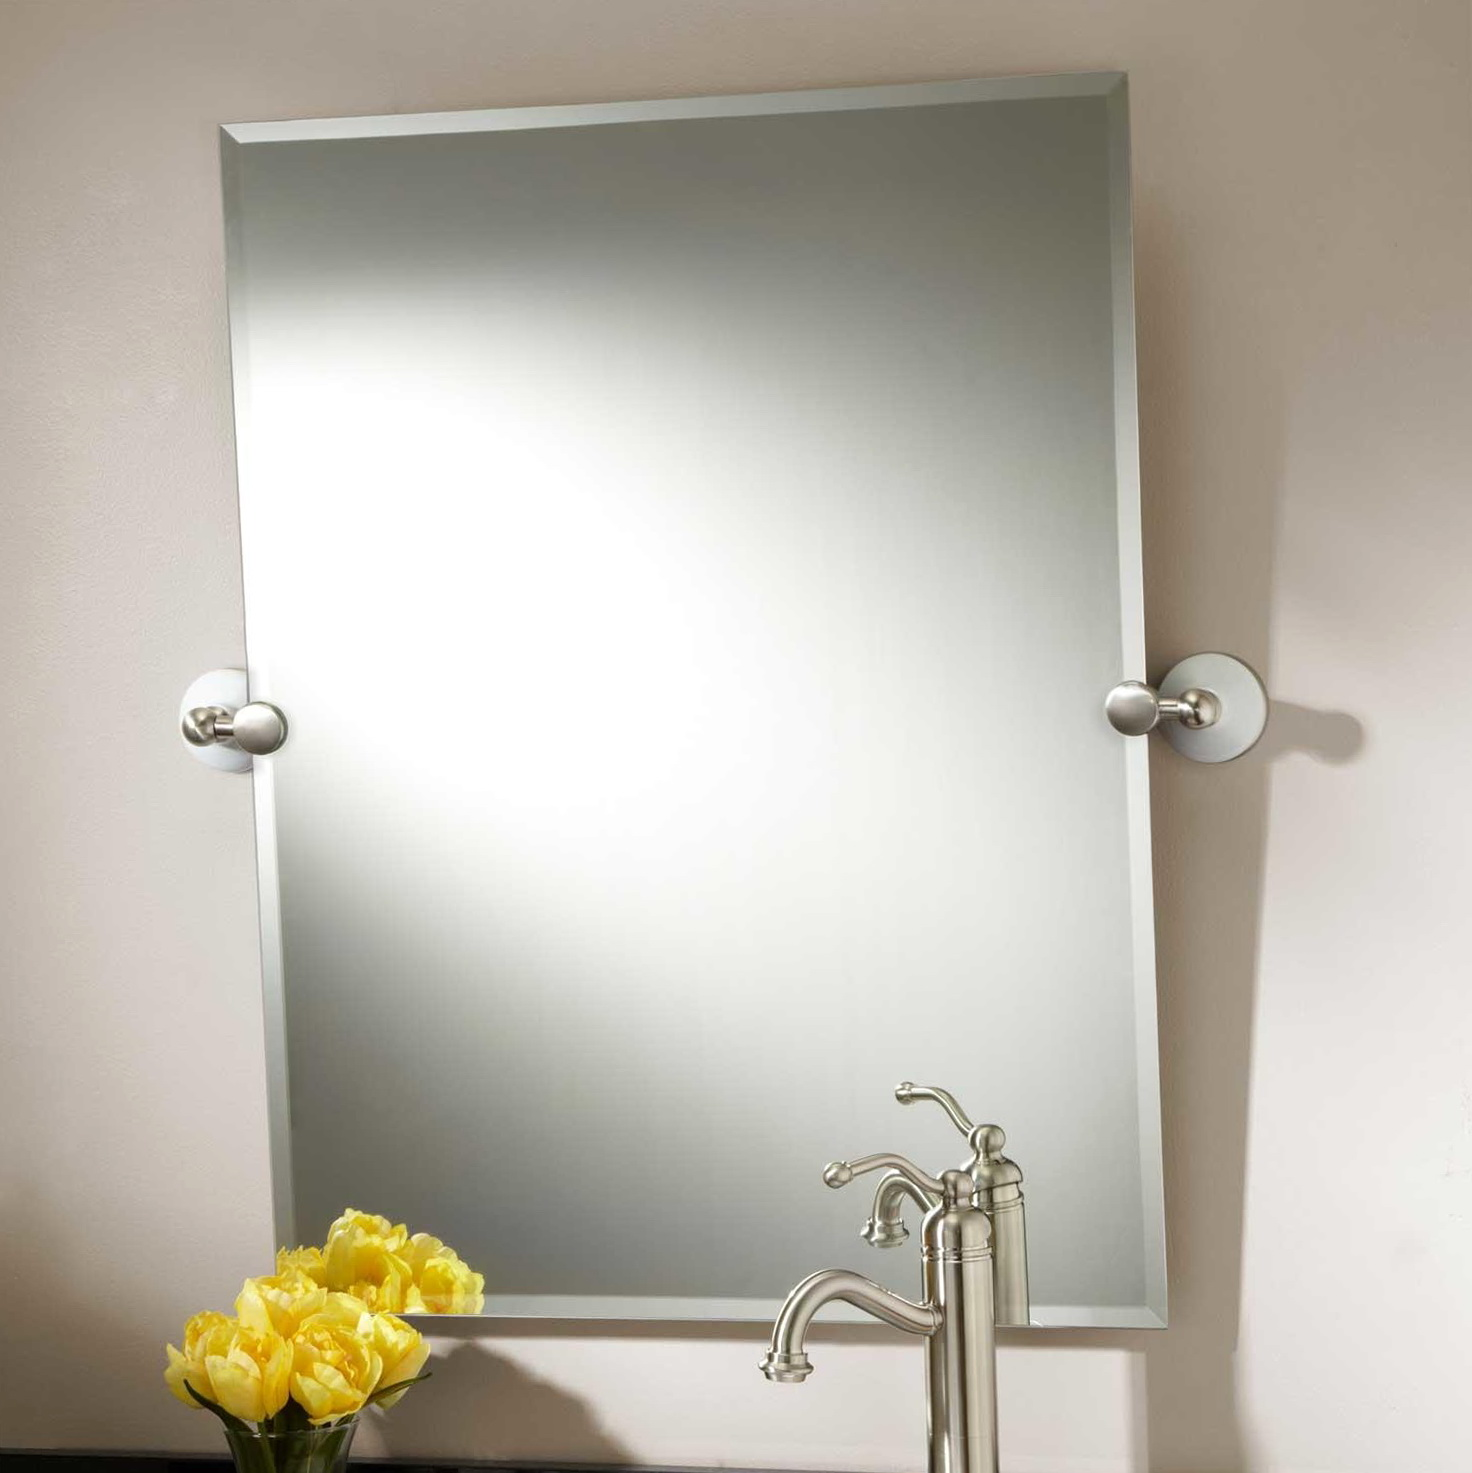 nickel framed bathroom mirror brushed nickel framed bathroom mirror home design ideas 19740